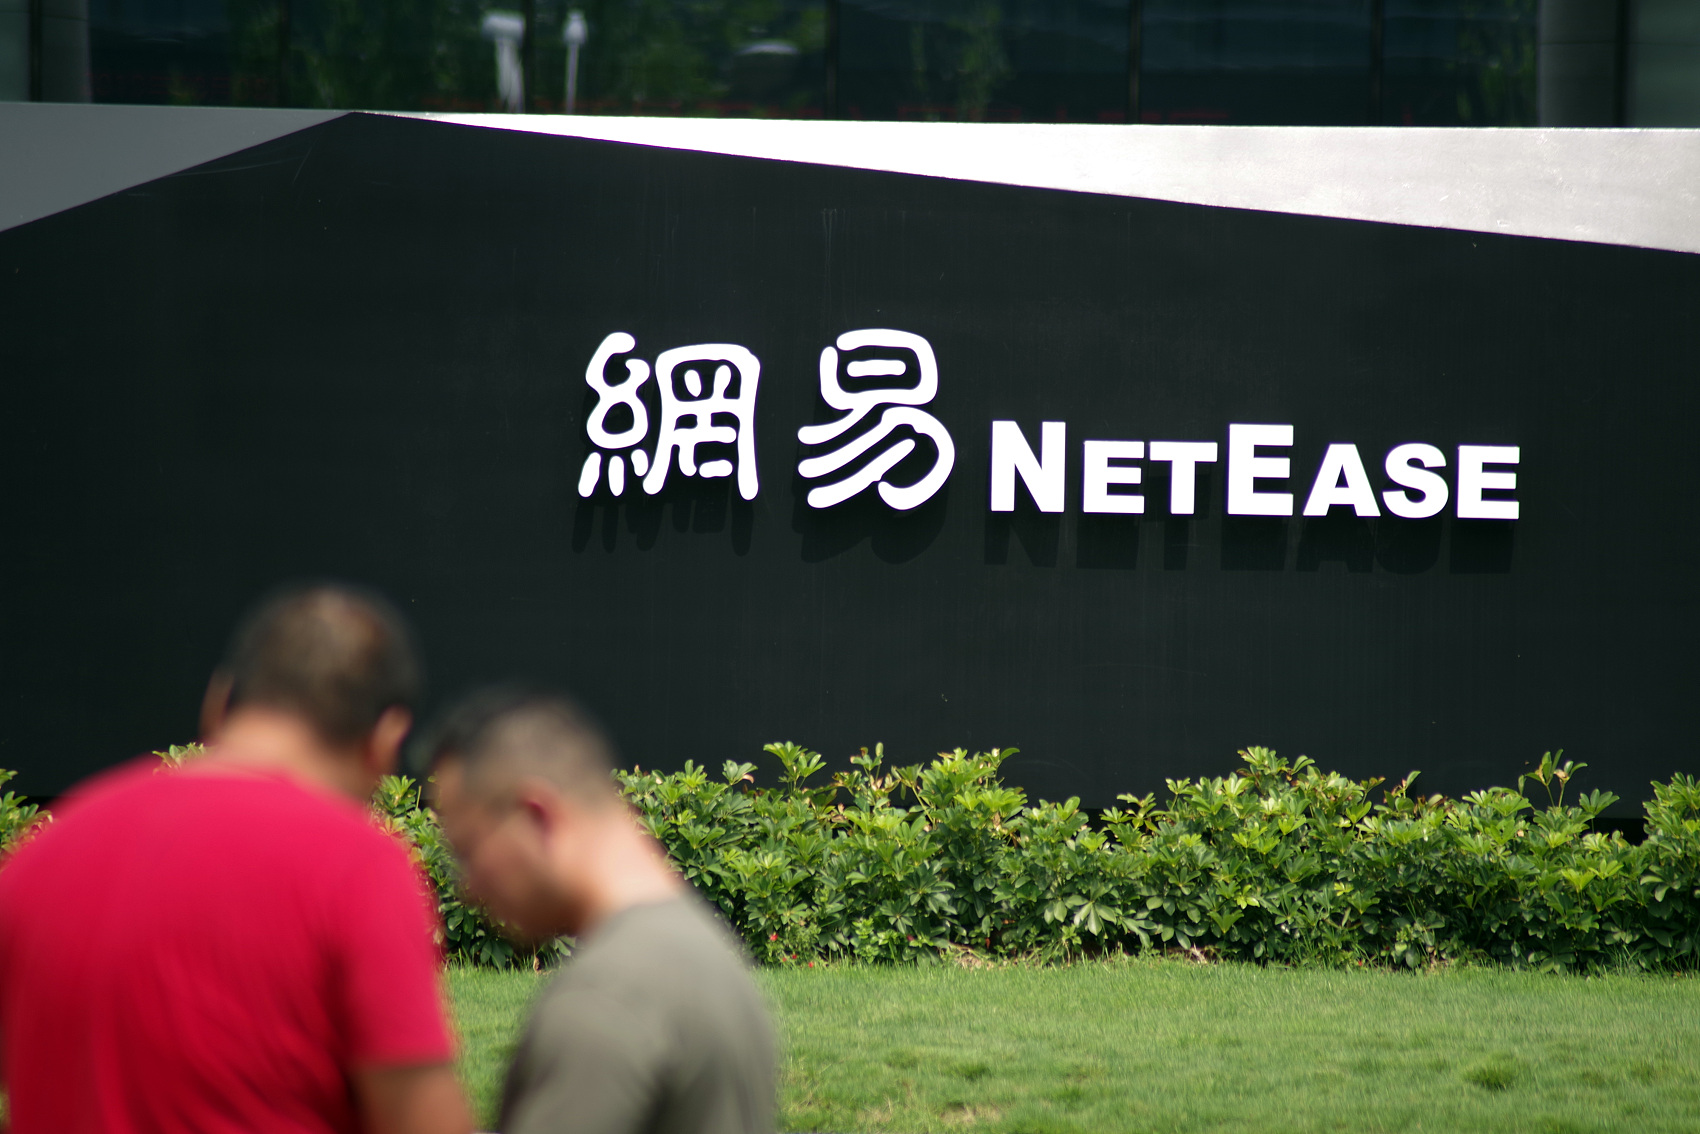 China's internet giant NetEase sees robust growth in Q3